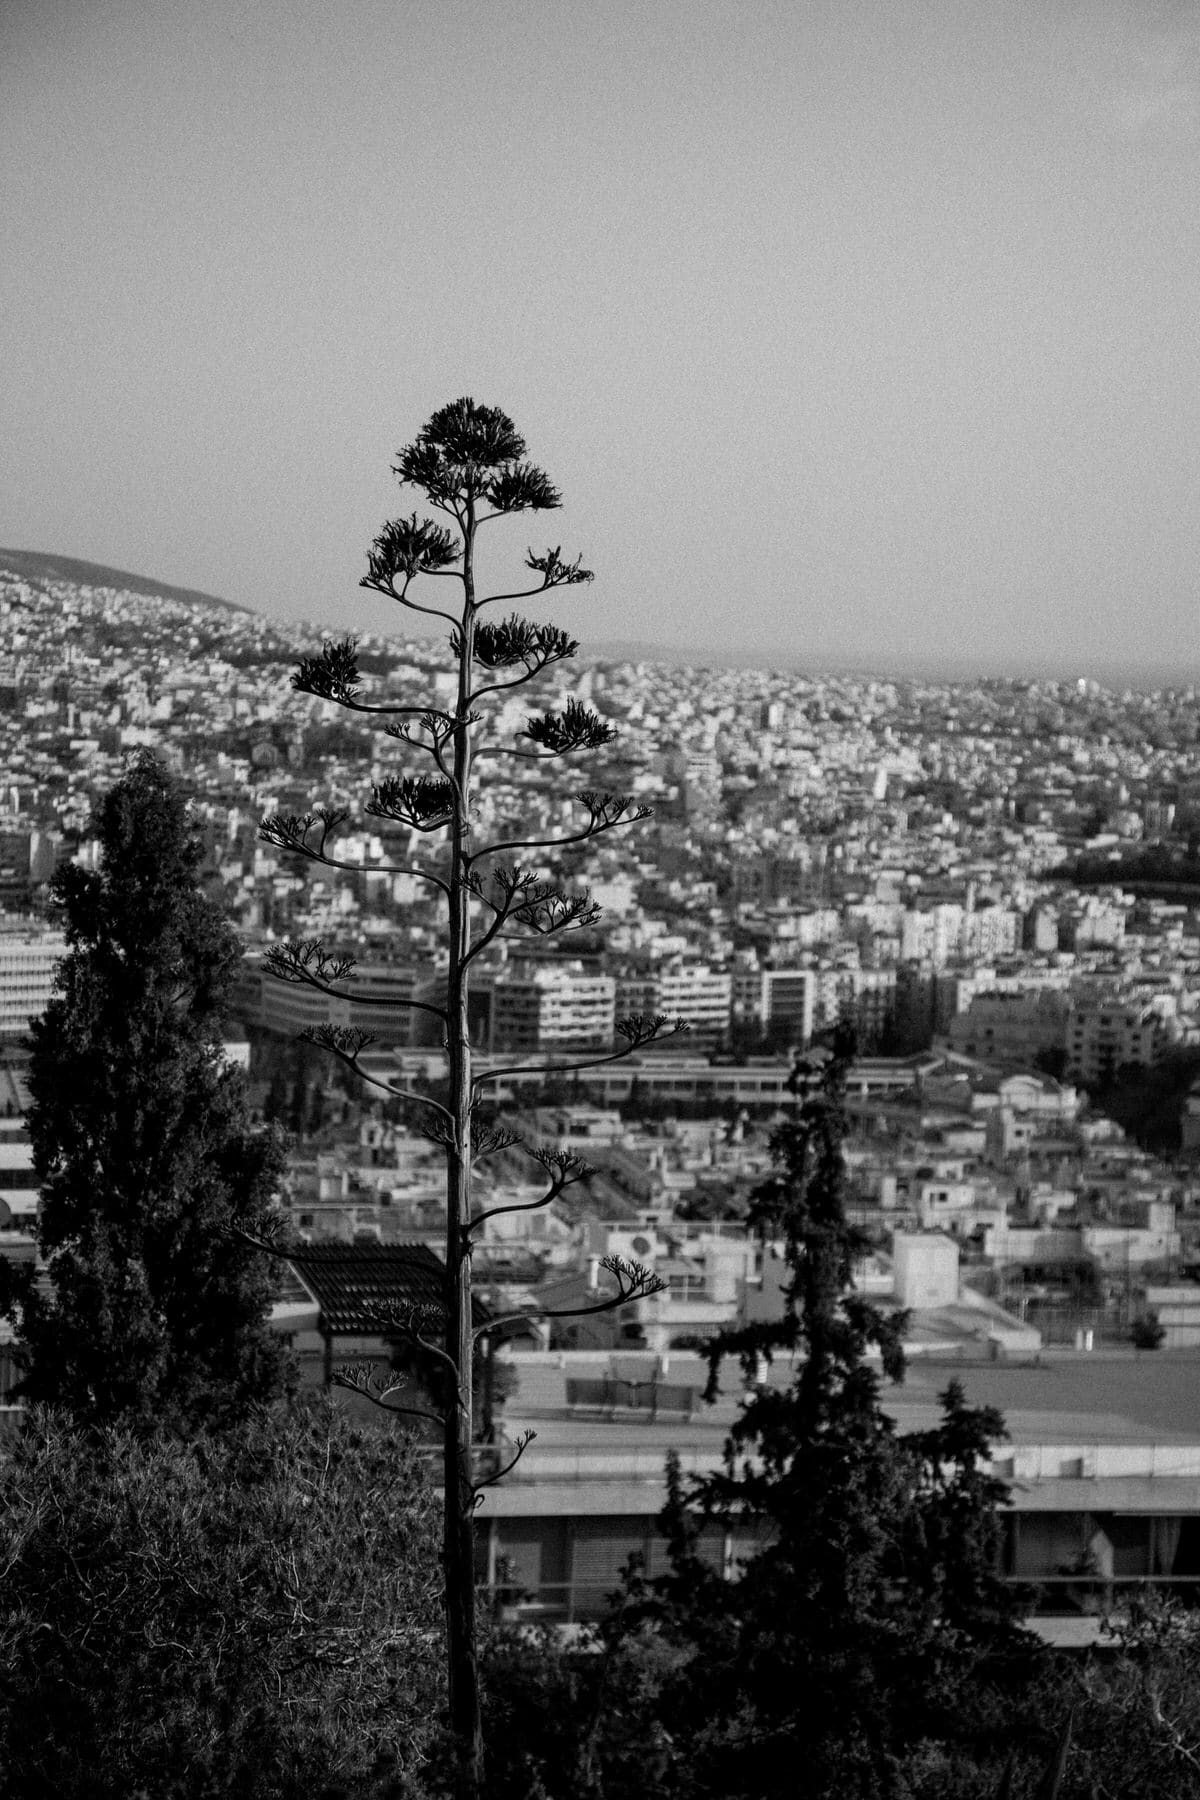 Athens-Greece-black-and-white-fine-art-photography-by-Studio-L-photographer-Laura-Schneider-_1812